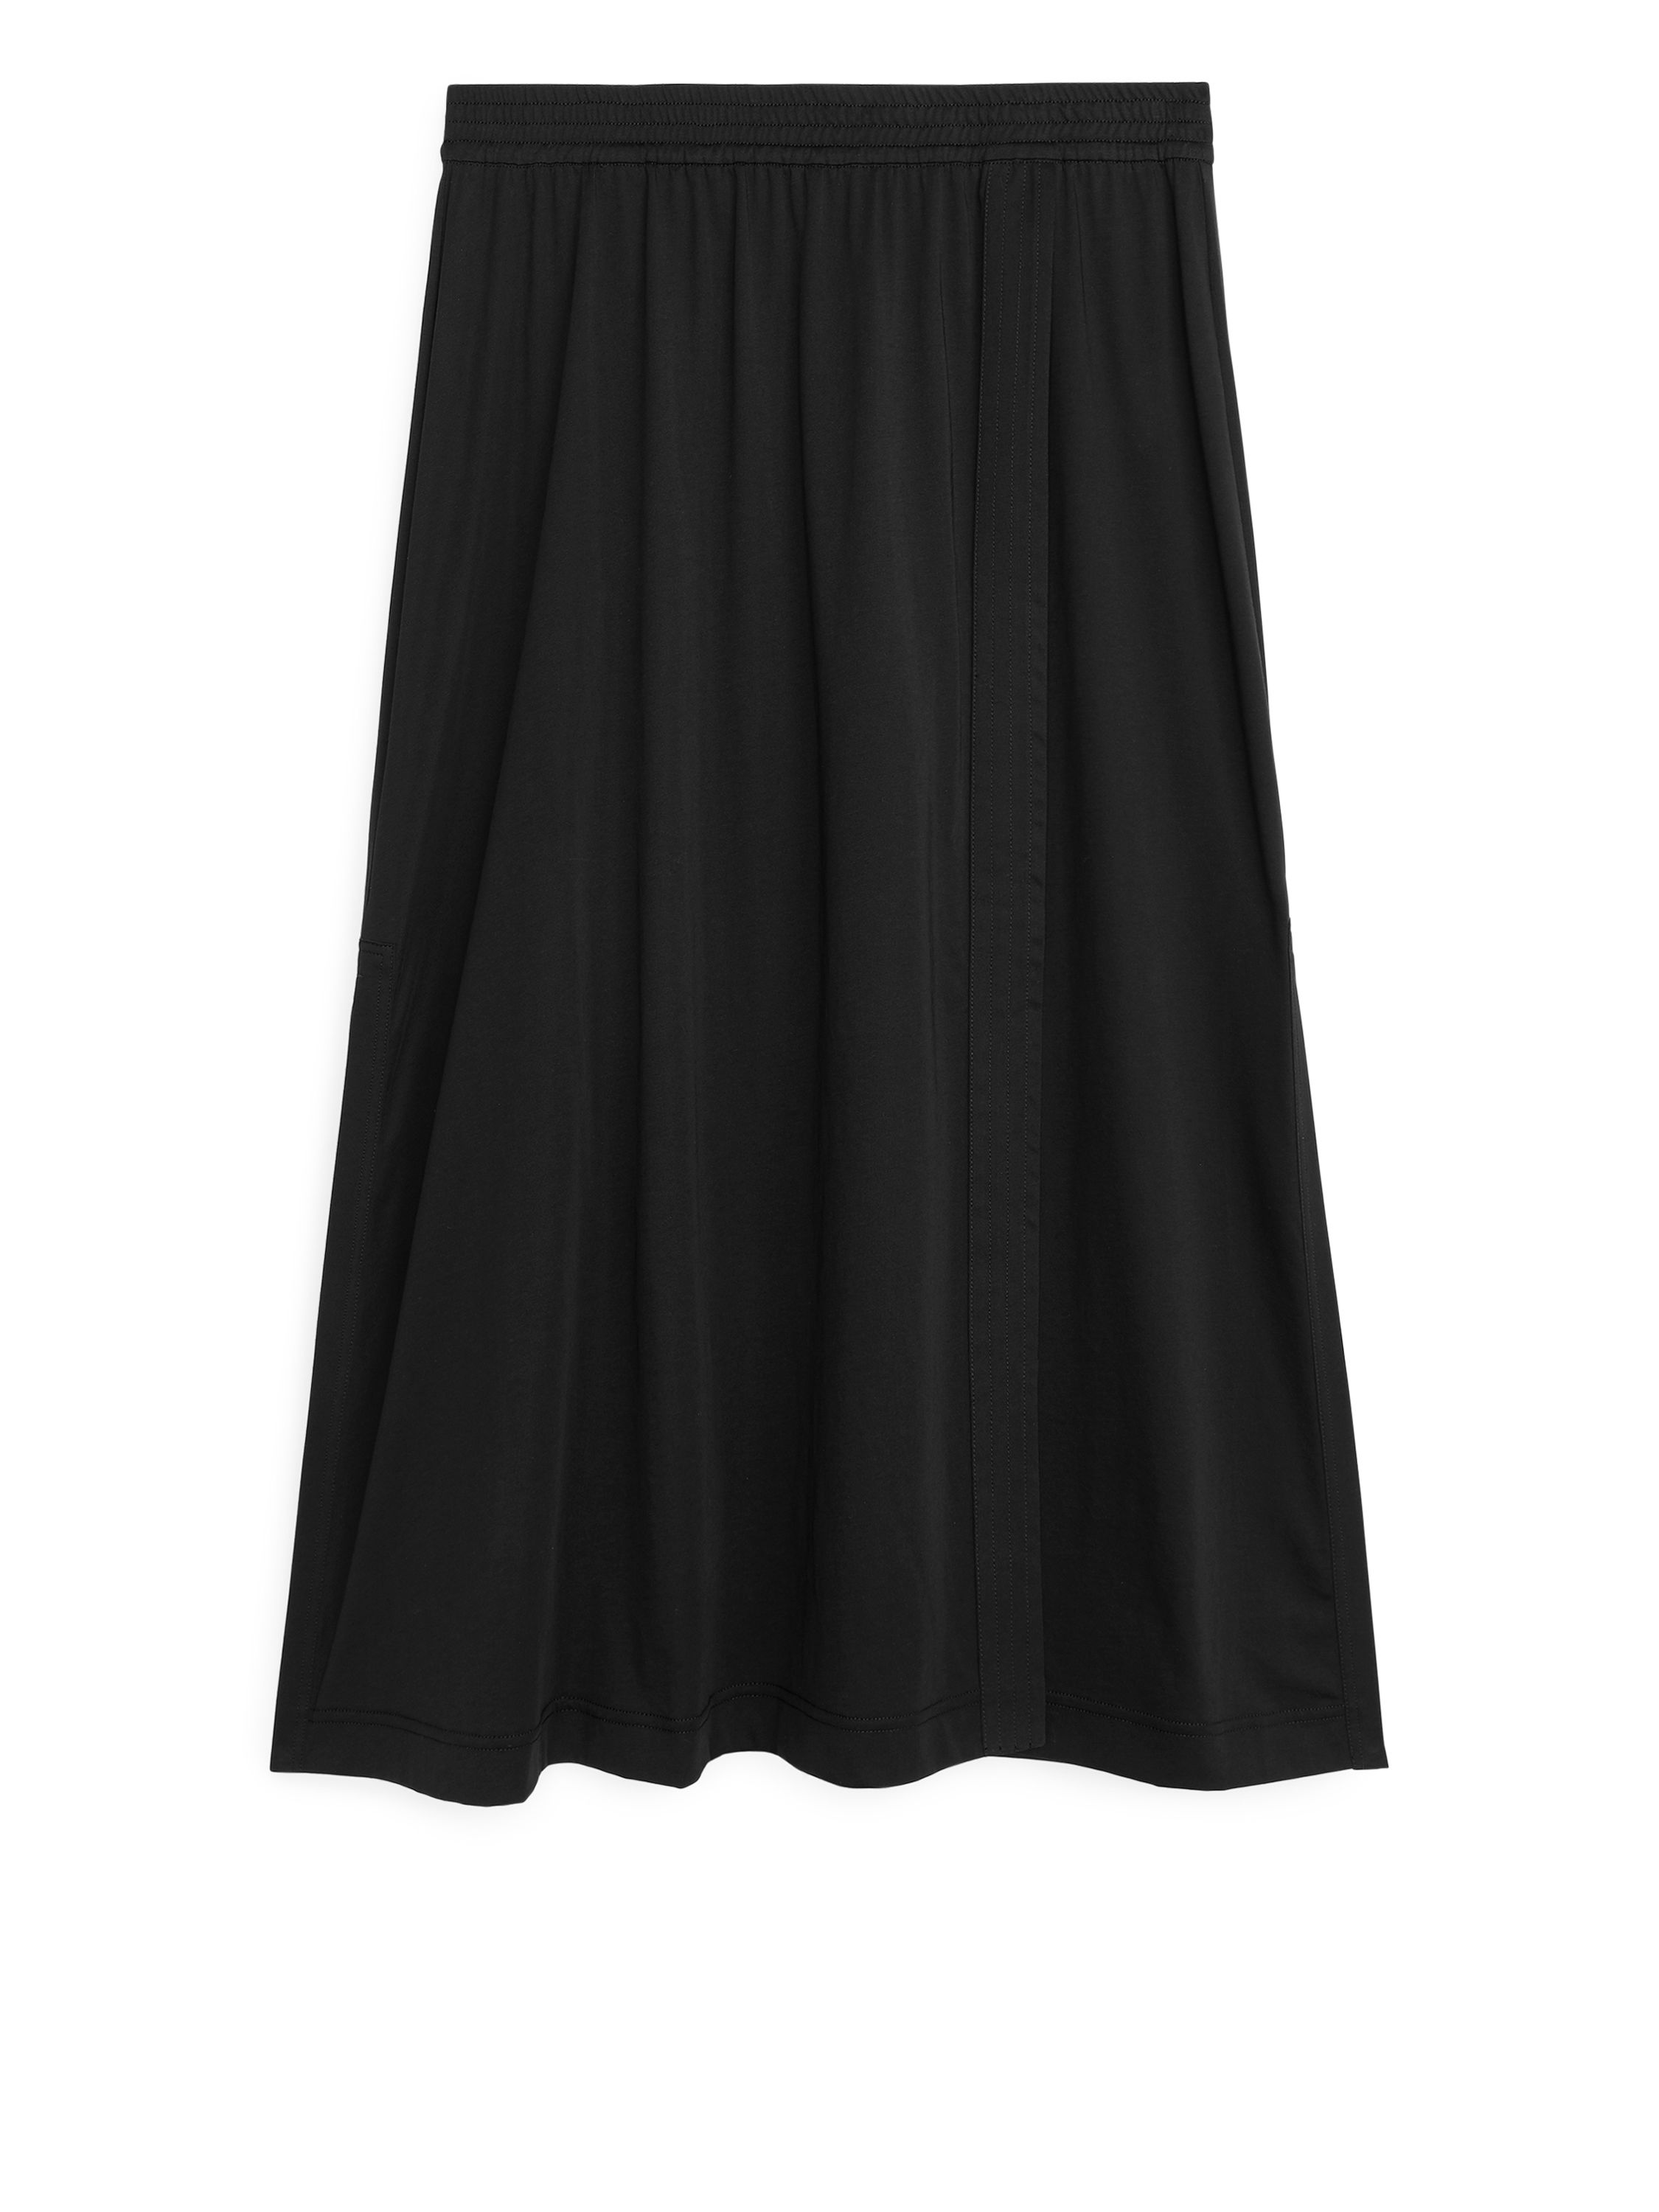 Fabric Swatch image of Arket wrap-style jersey skirt in black